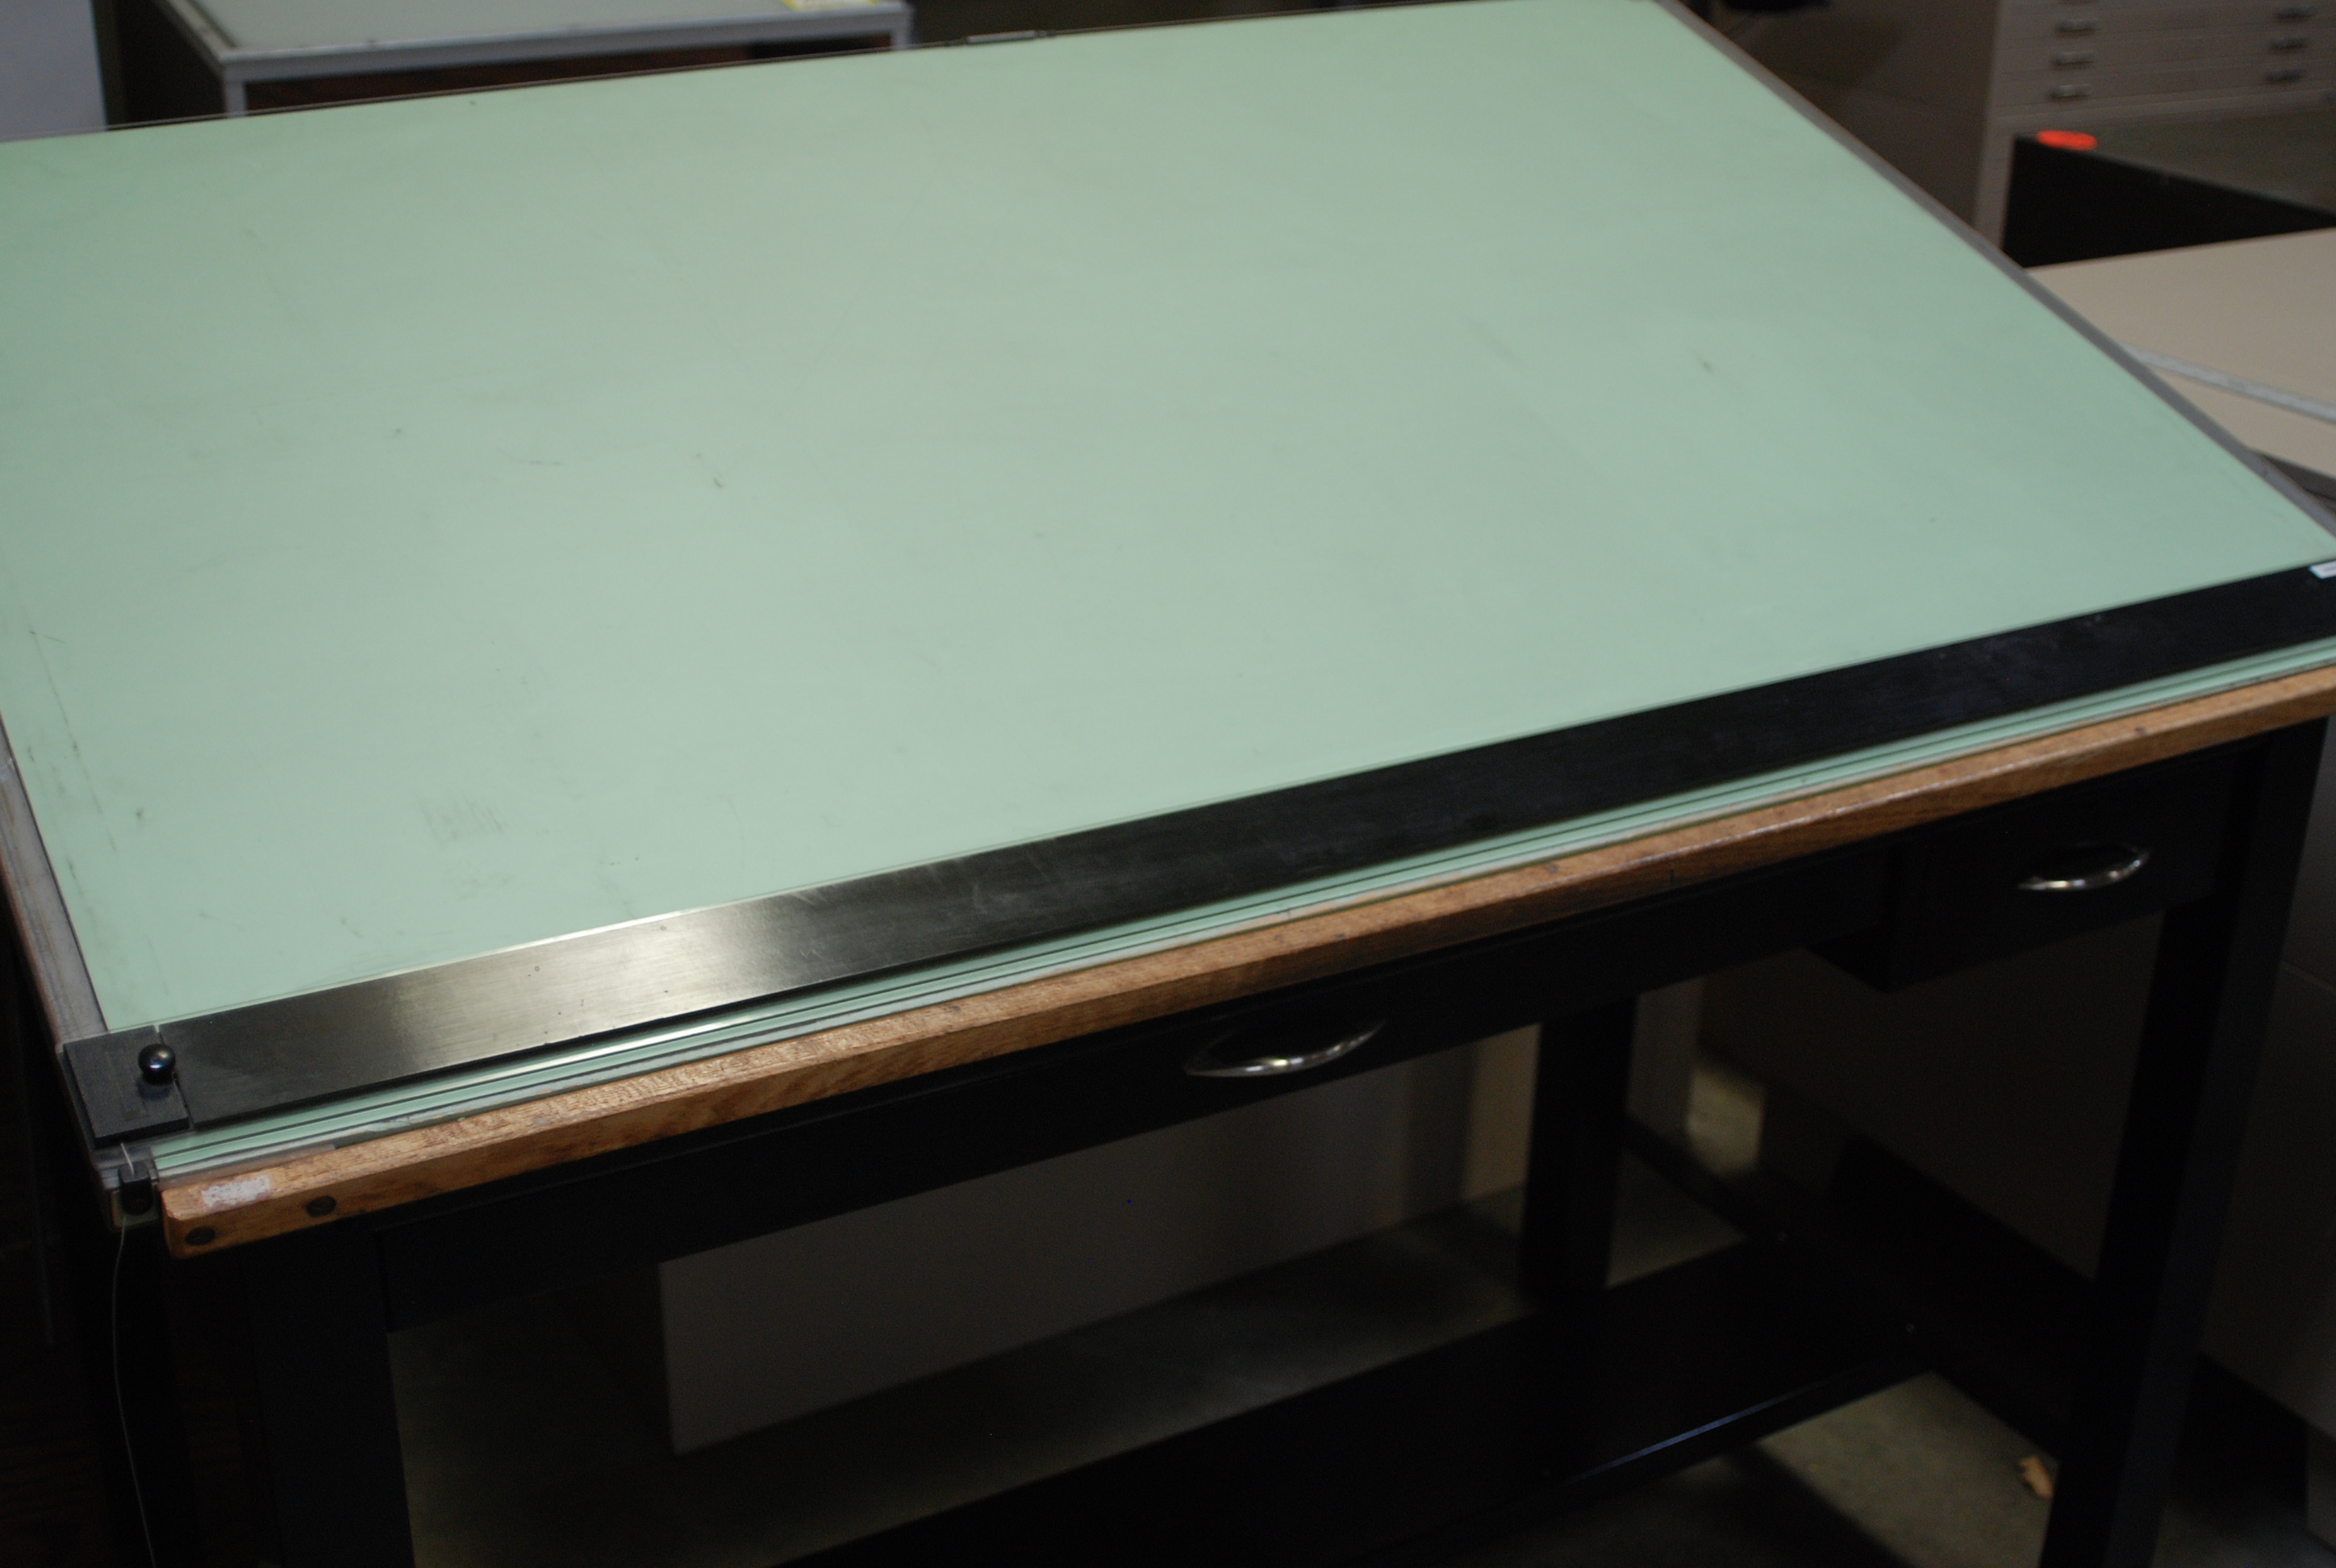 Edge A Reconditioned 4 Post Metal Drafting Table With Center Drawer Tool And Mayline Straightedge Top Size Is 37 5 X 60